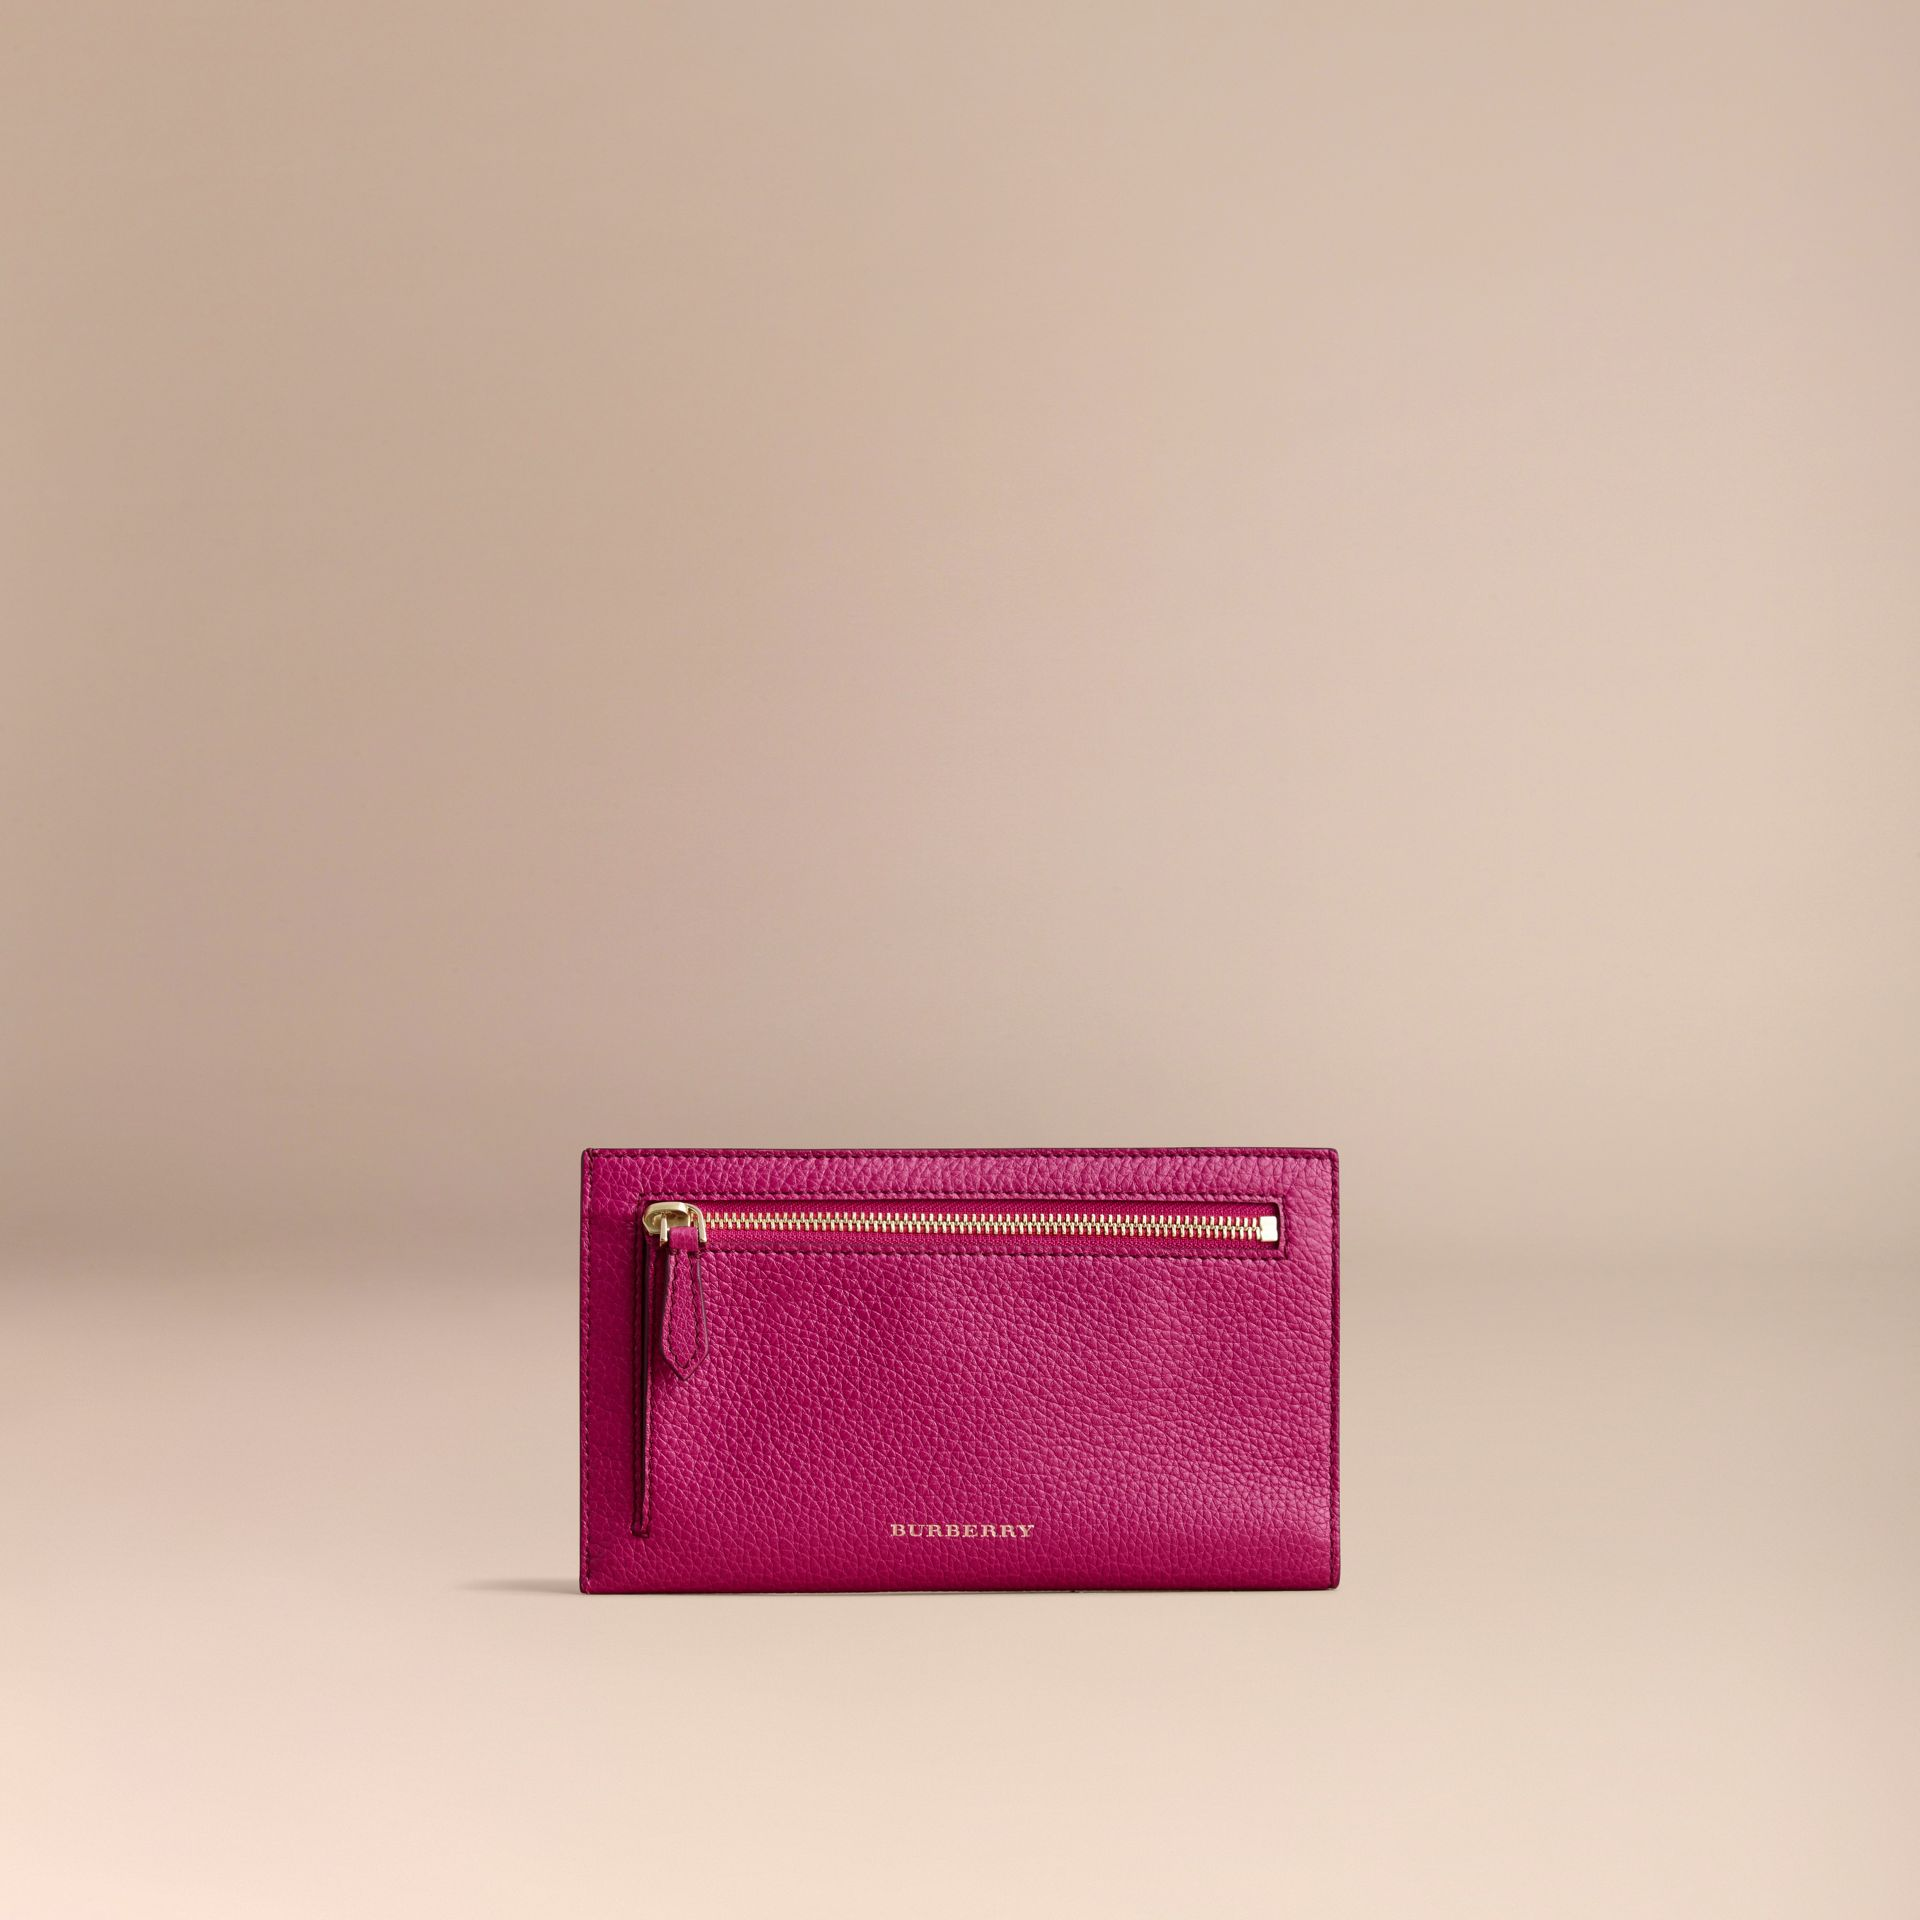 Grainy Leather Travel Case in Brilliant Fuchsia - Women | Burberry - gallery image 5